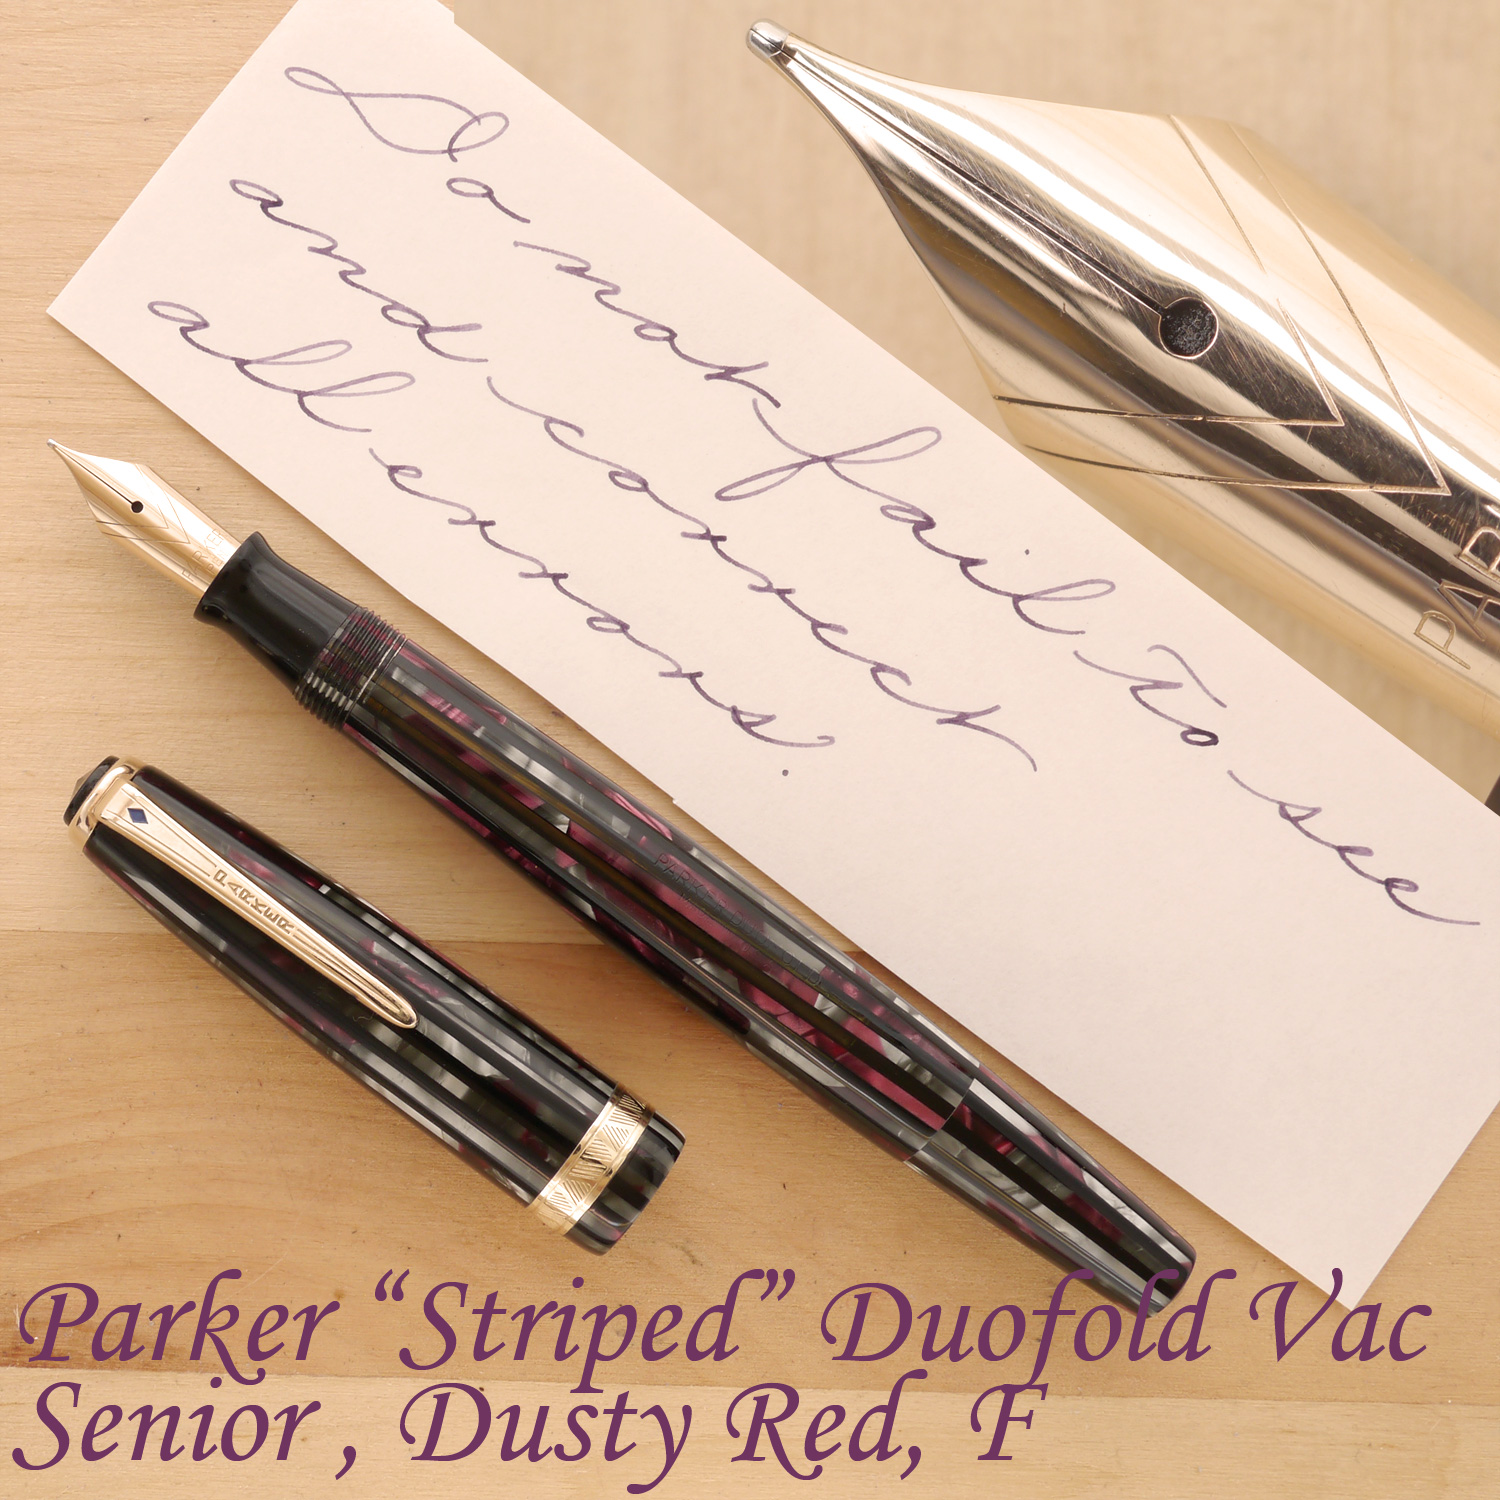 "Parker ""Striped"" Duofold Vacumatic Senior, Dusty Red, F, uncapped"